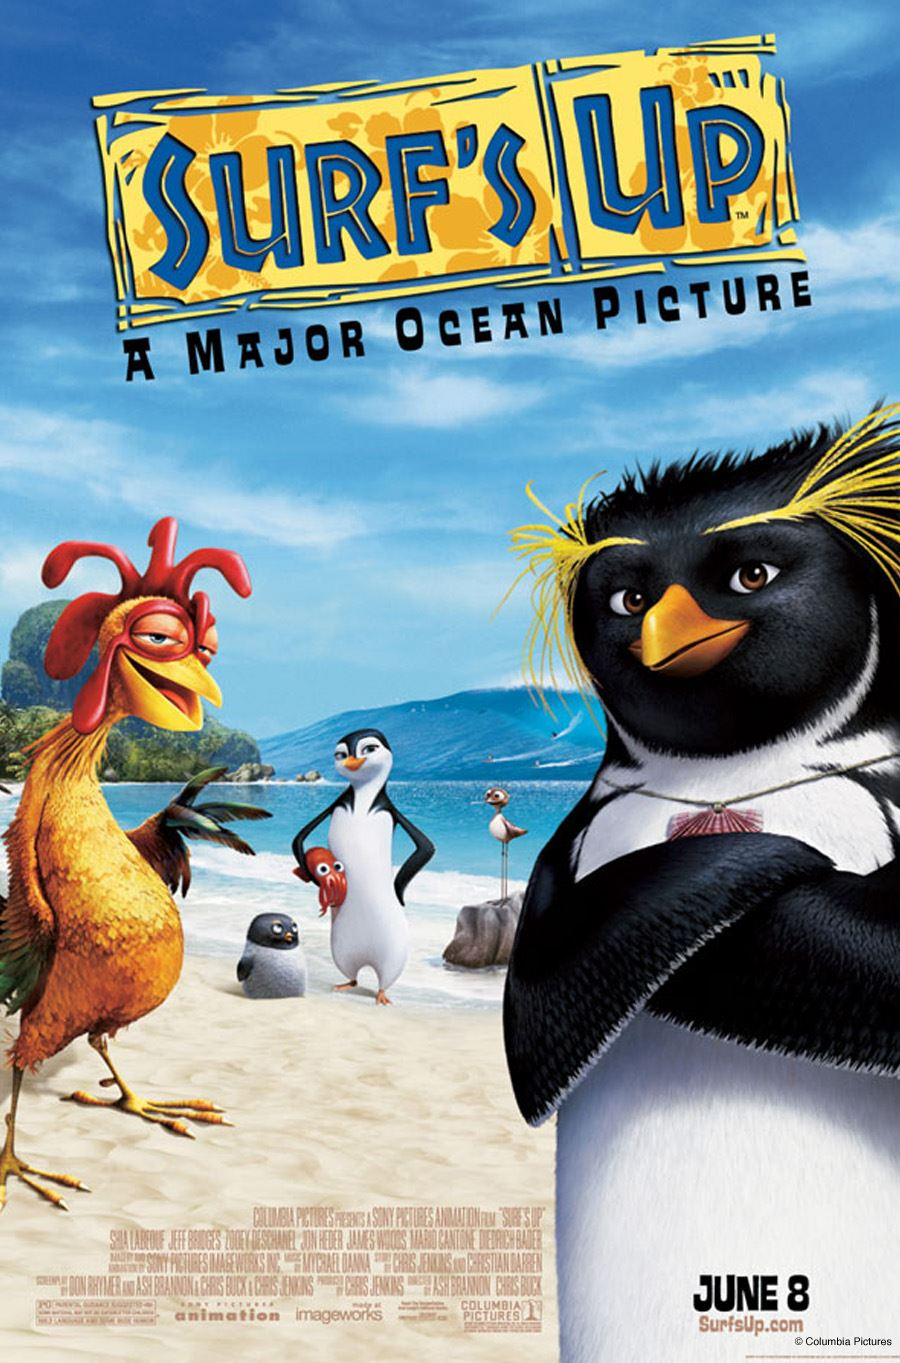 Surfs up - penguins and chicken on a beach